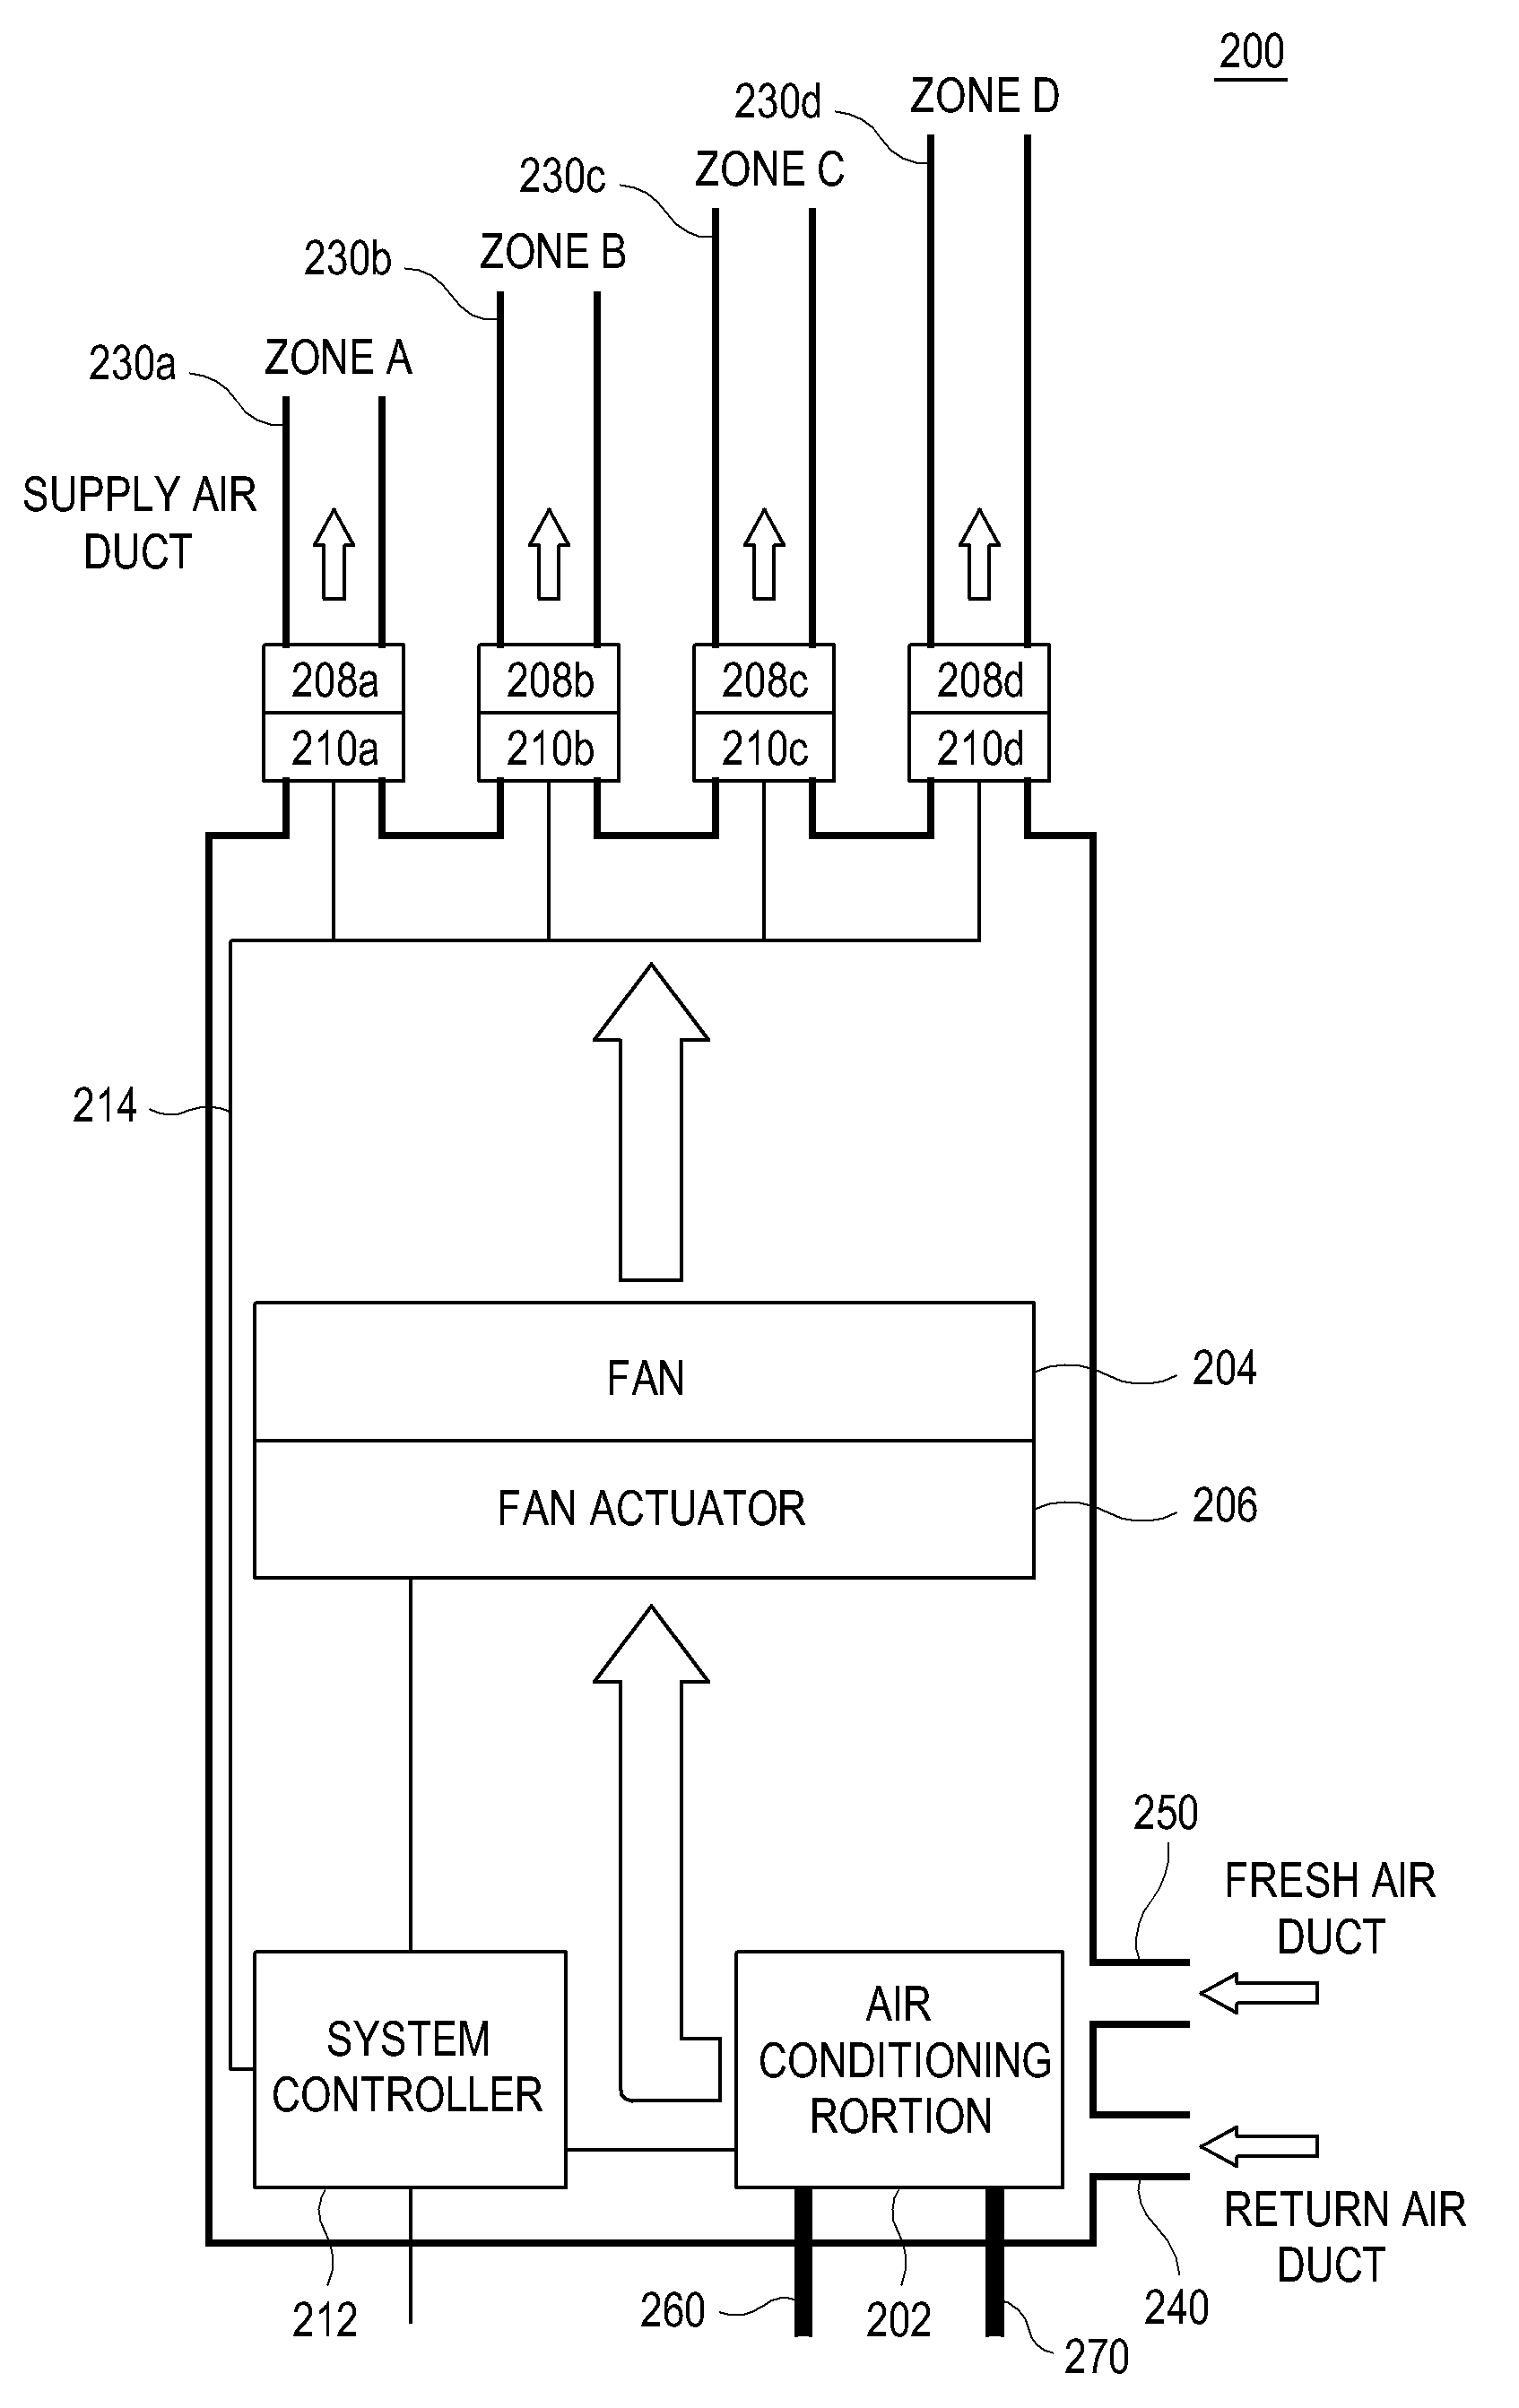 patent woa variable air volume system patents patent drawing